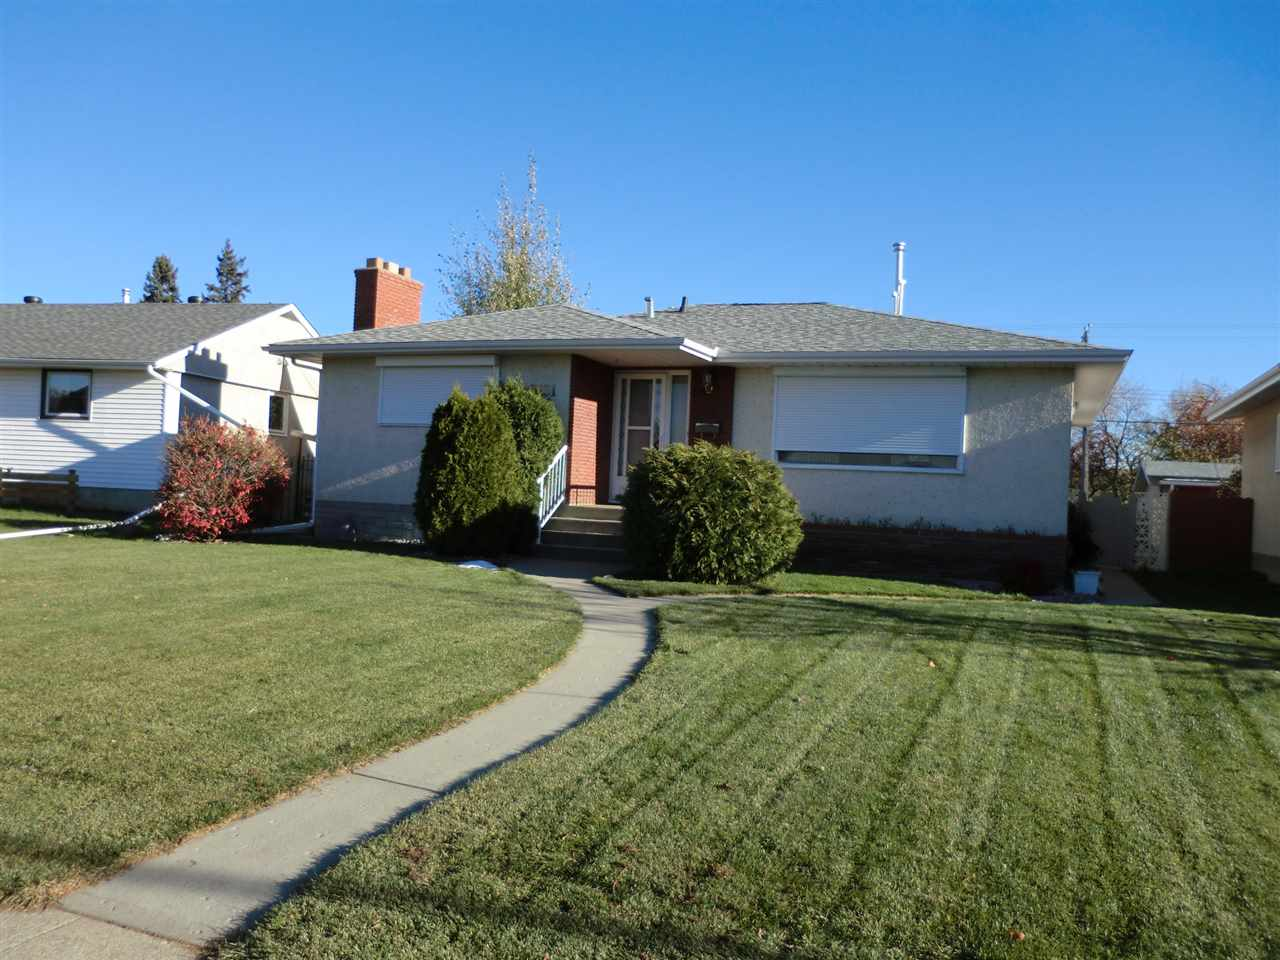 4631 111A Street NW, 3 bed, 2.1 bath, at $447,500